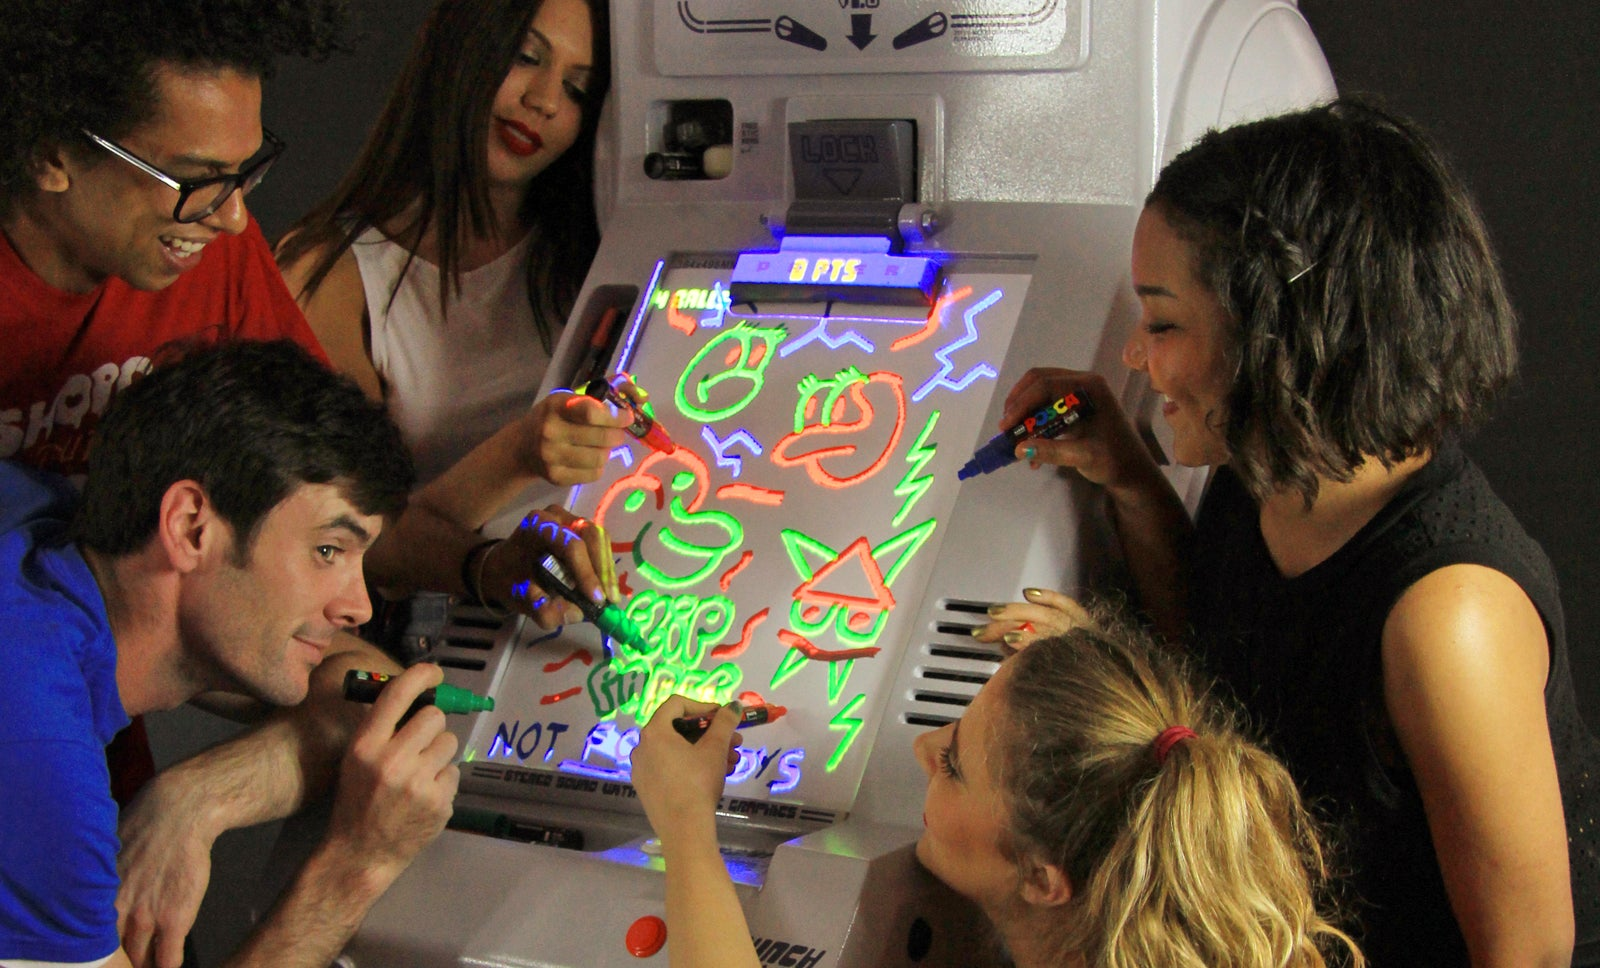 You Can Draw Your Own Obstacles and Power-Ups on This Weird Pinball Machine